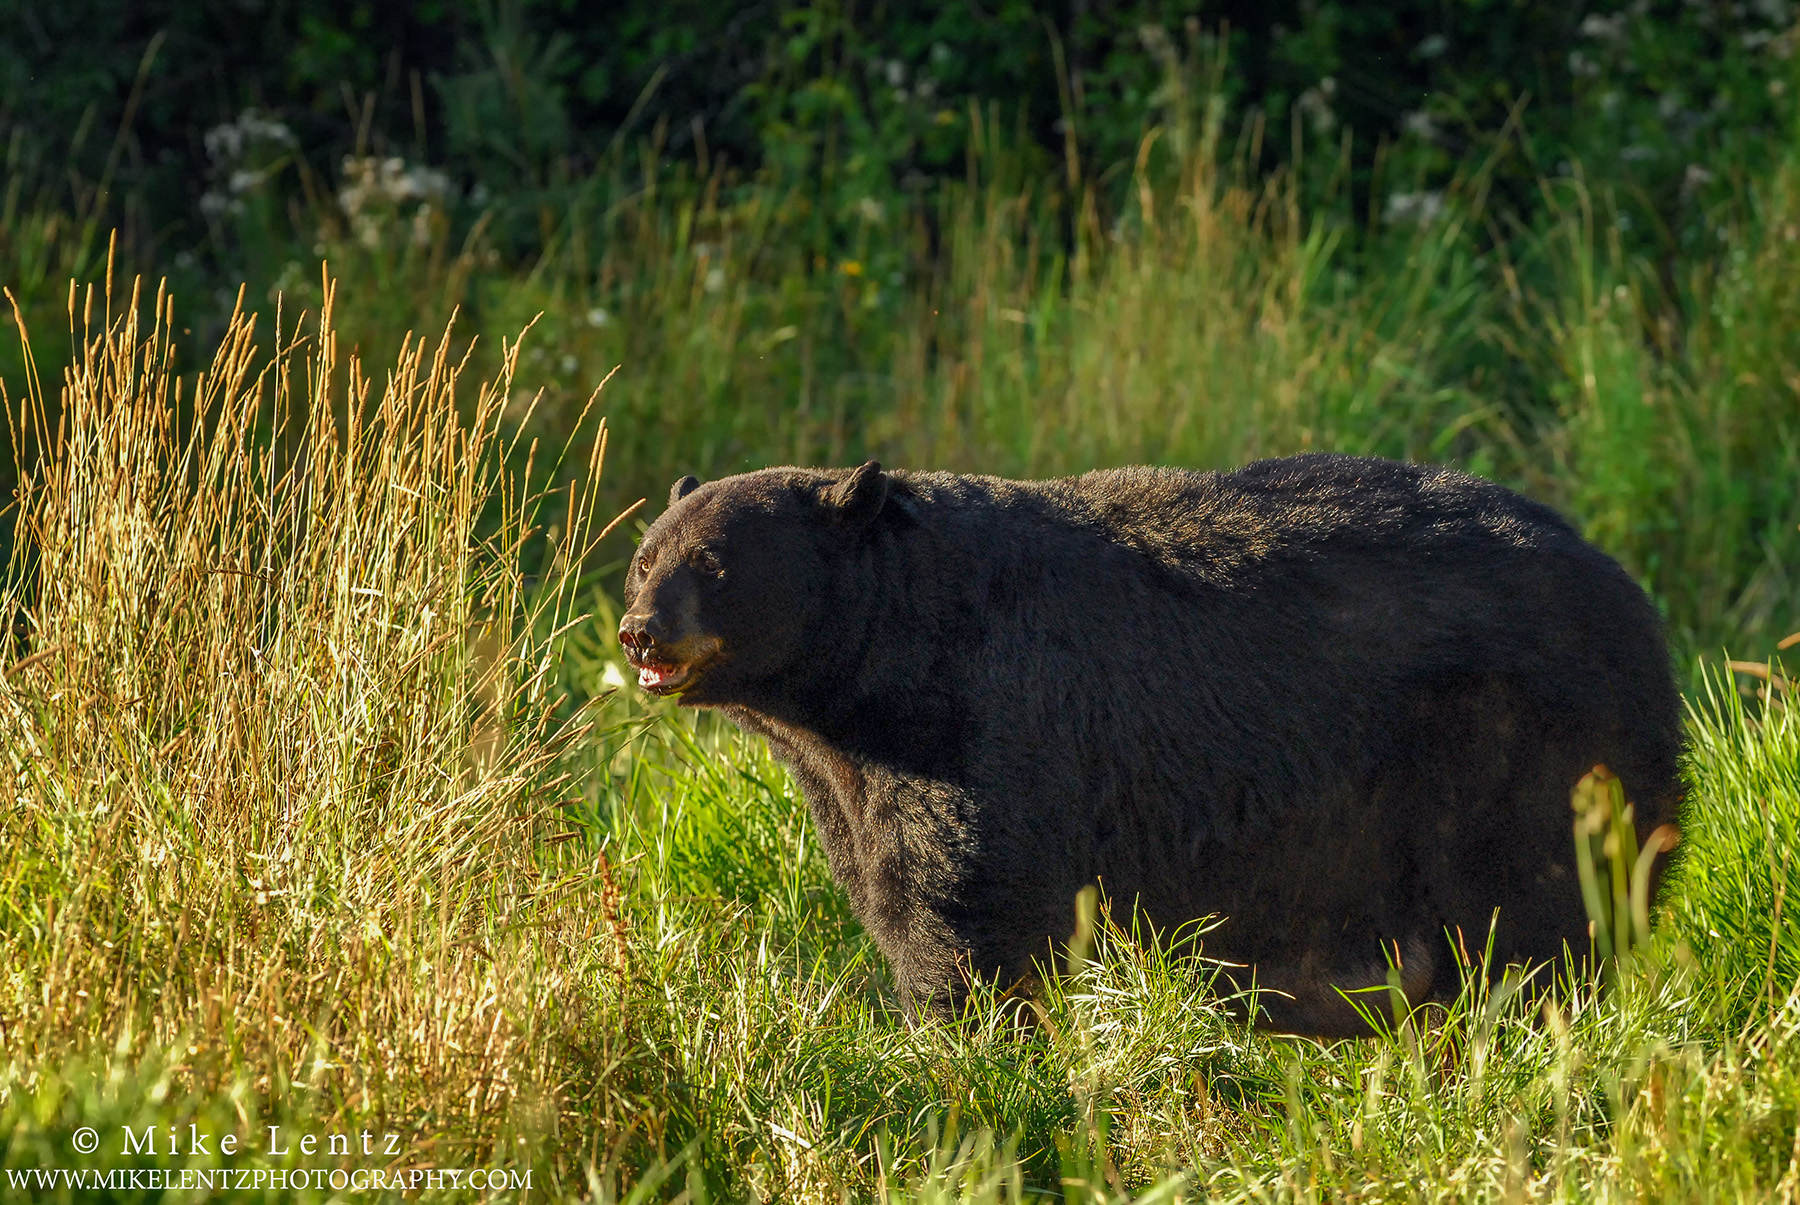 Black bear in field grassesps2